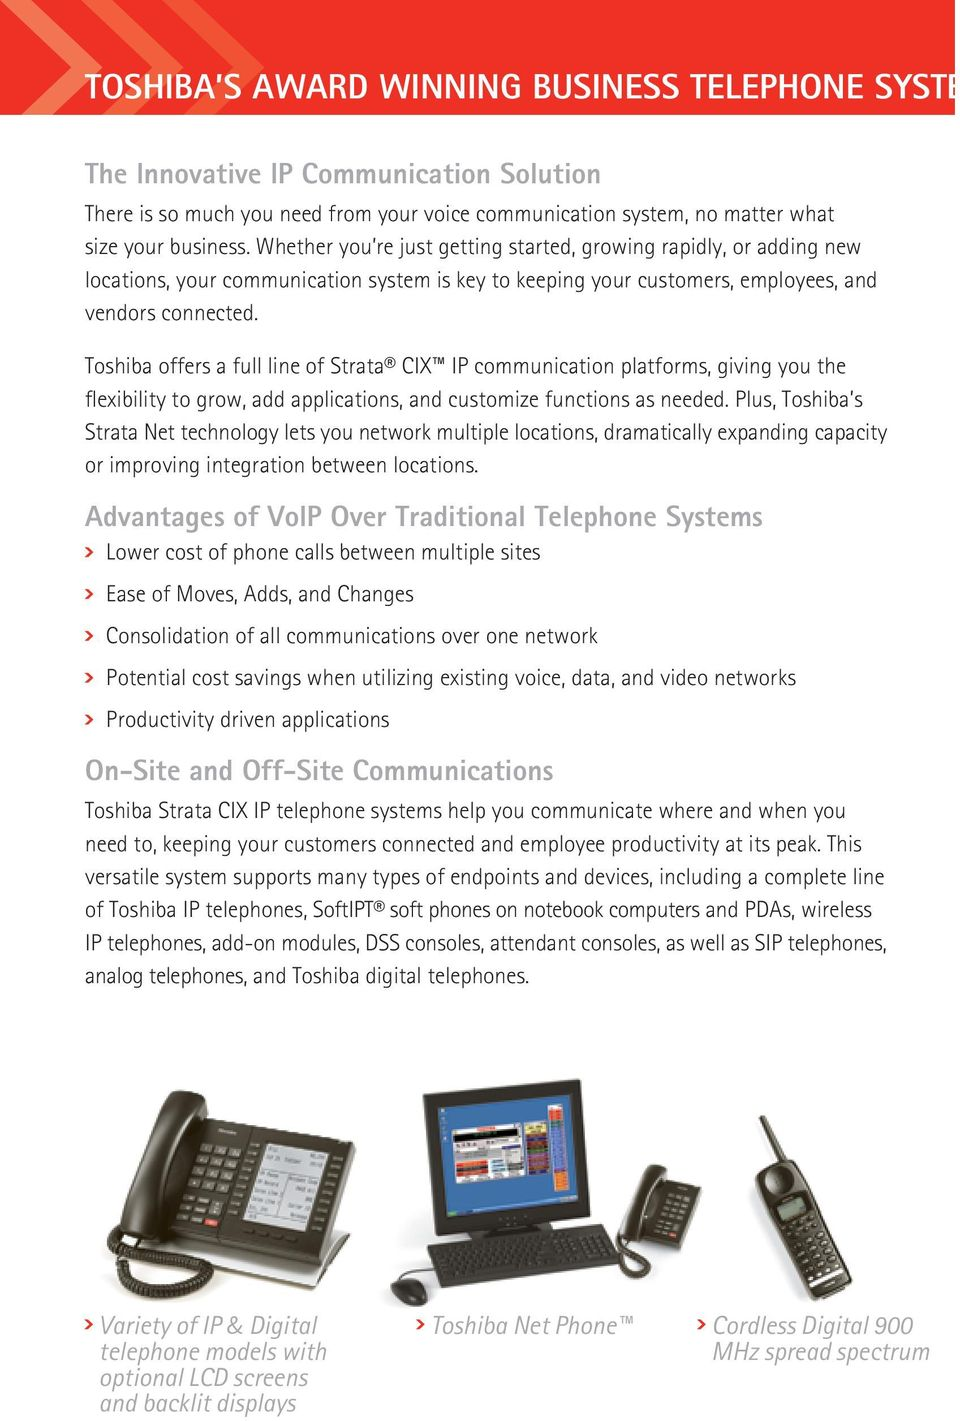 Toshiba offers a full line of Strata CIX IP communication platforms, giving you the flexibility to grow, add applications, and customize functions as needed.